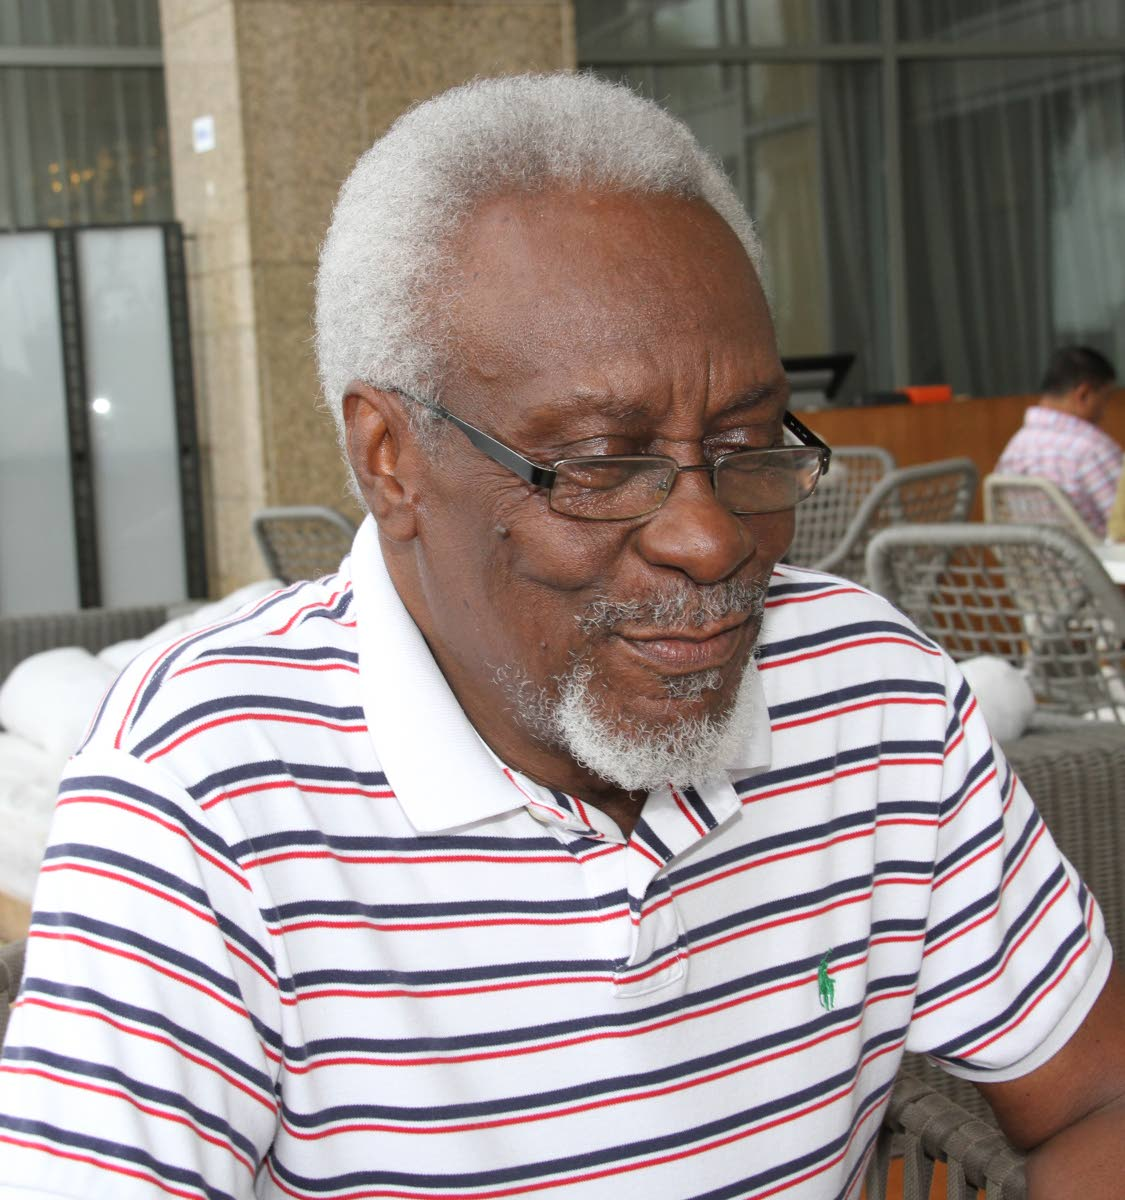 PJ Patterson, former prime minister of Jamaica, reflects on the Caribbean and his life in politics in a Sunday Newsday interview at Hyatt Regency, Port of Spain on September 17. PHOTO BY SUREASH CHOLAI